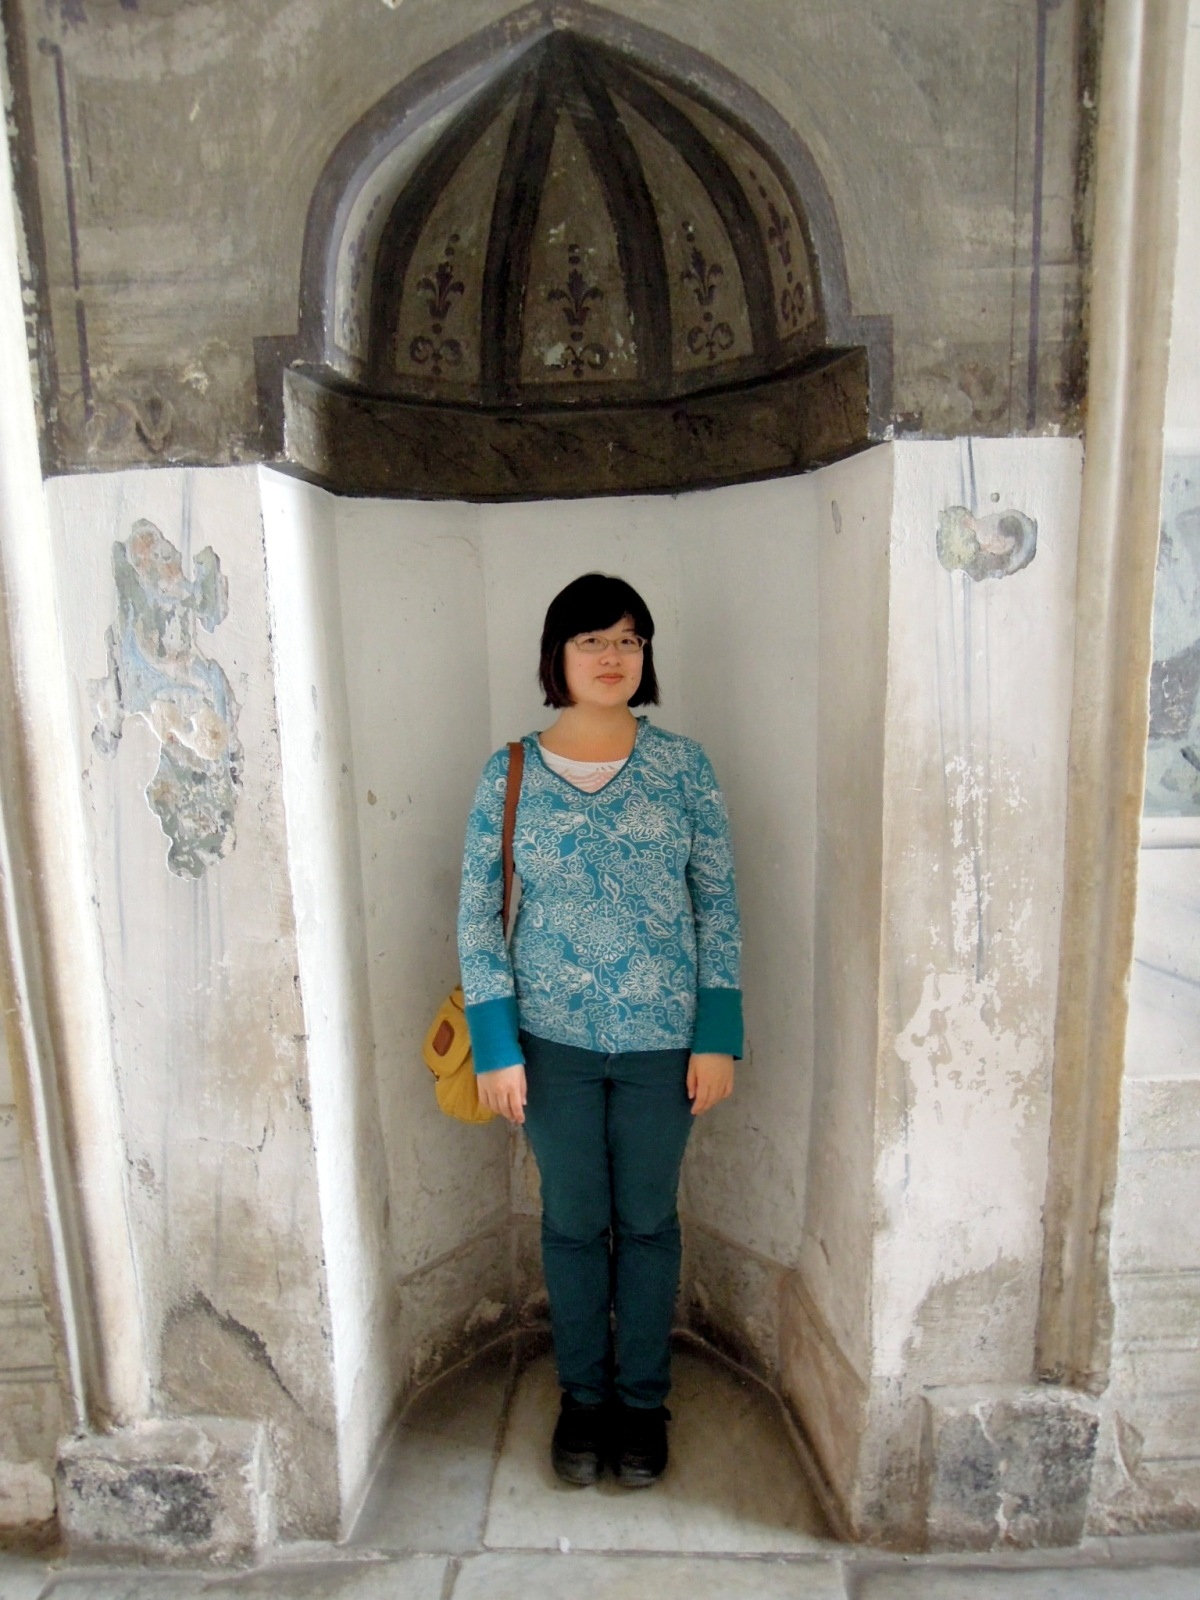 Lisa standing in an alcove